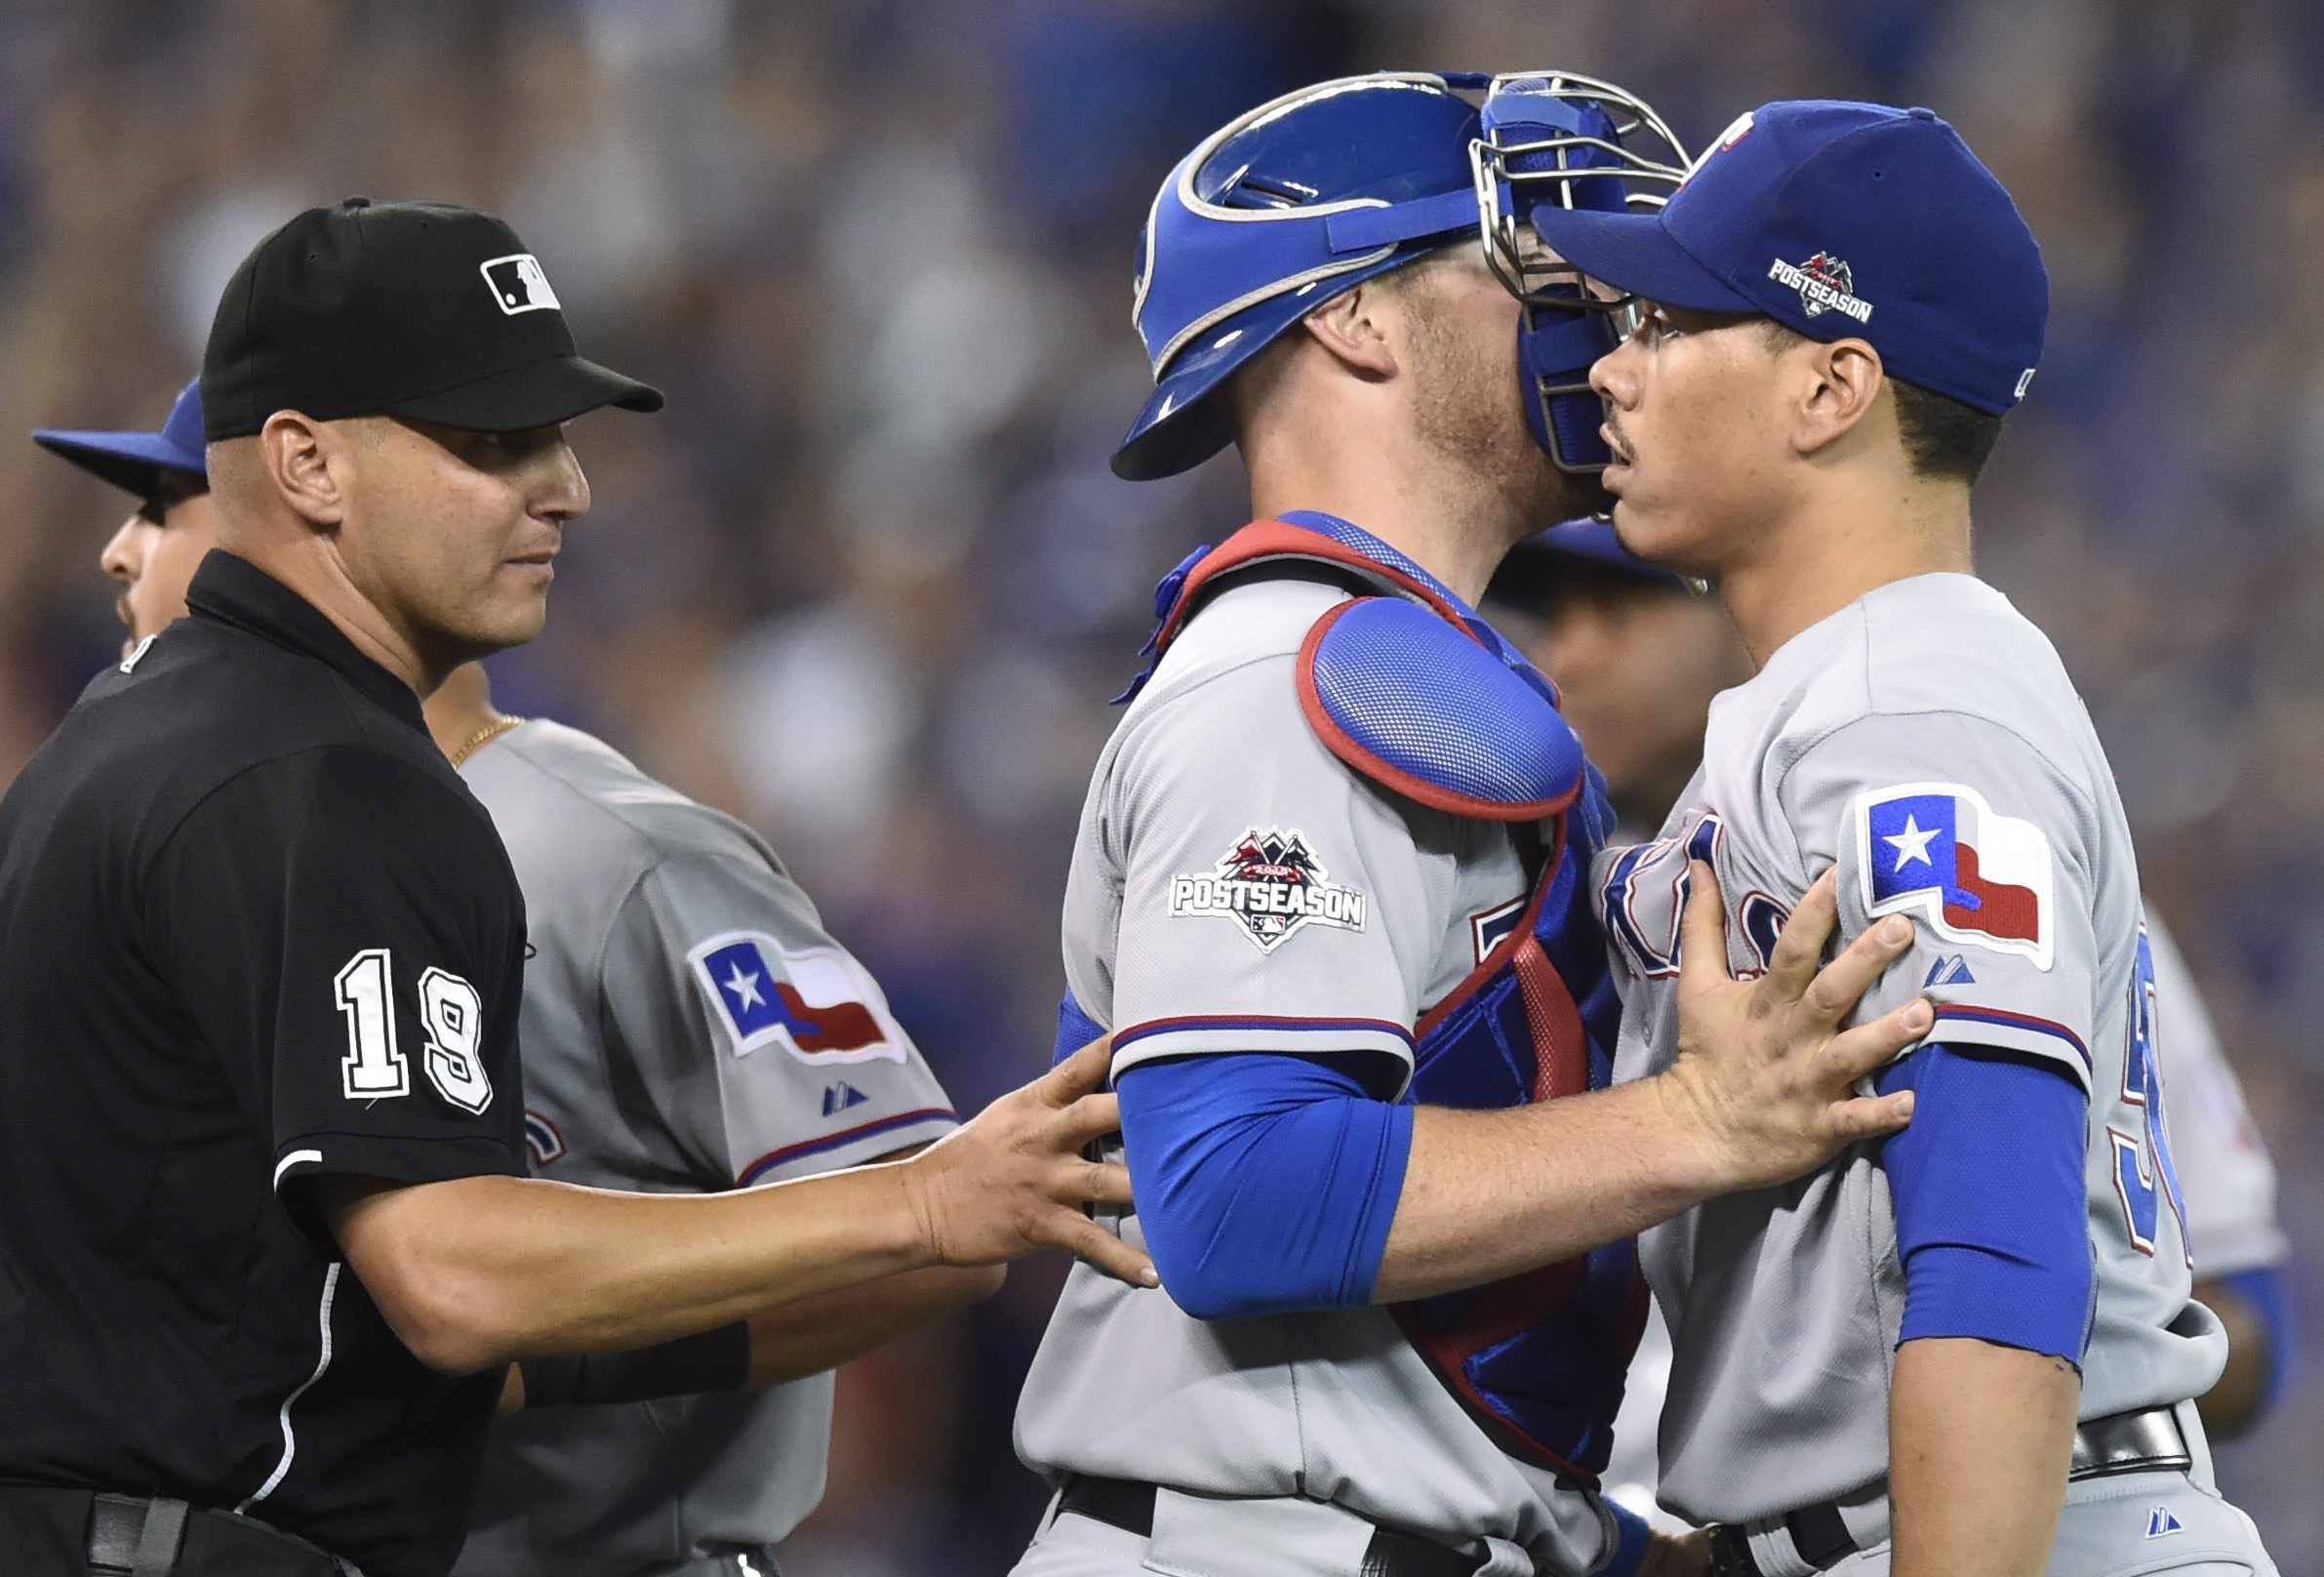 Texas Rangers' Keone Kela, right, is held back by teammate catcher Chris Gimenez, center, during the 13th inning of baseball Game 2 of the American League Division Series against the Toronto Blue Jays in Toronto, Friday, Oct. 9, 2015. (Frank Gunn/The Cana